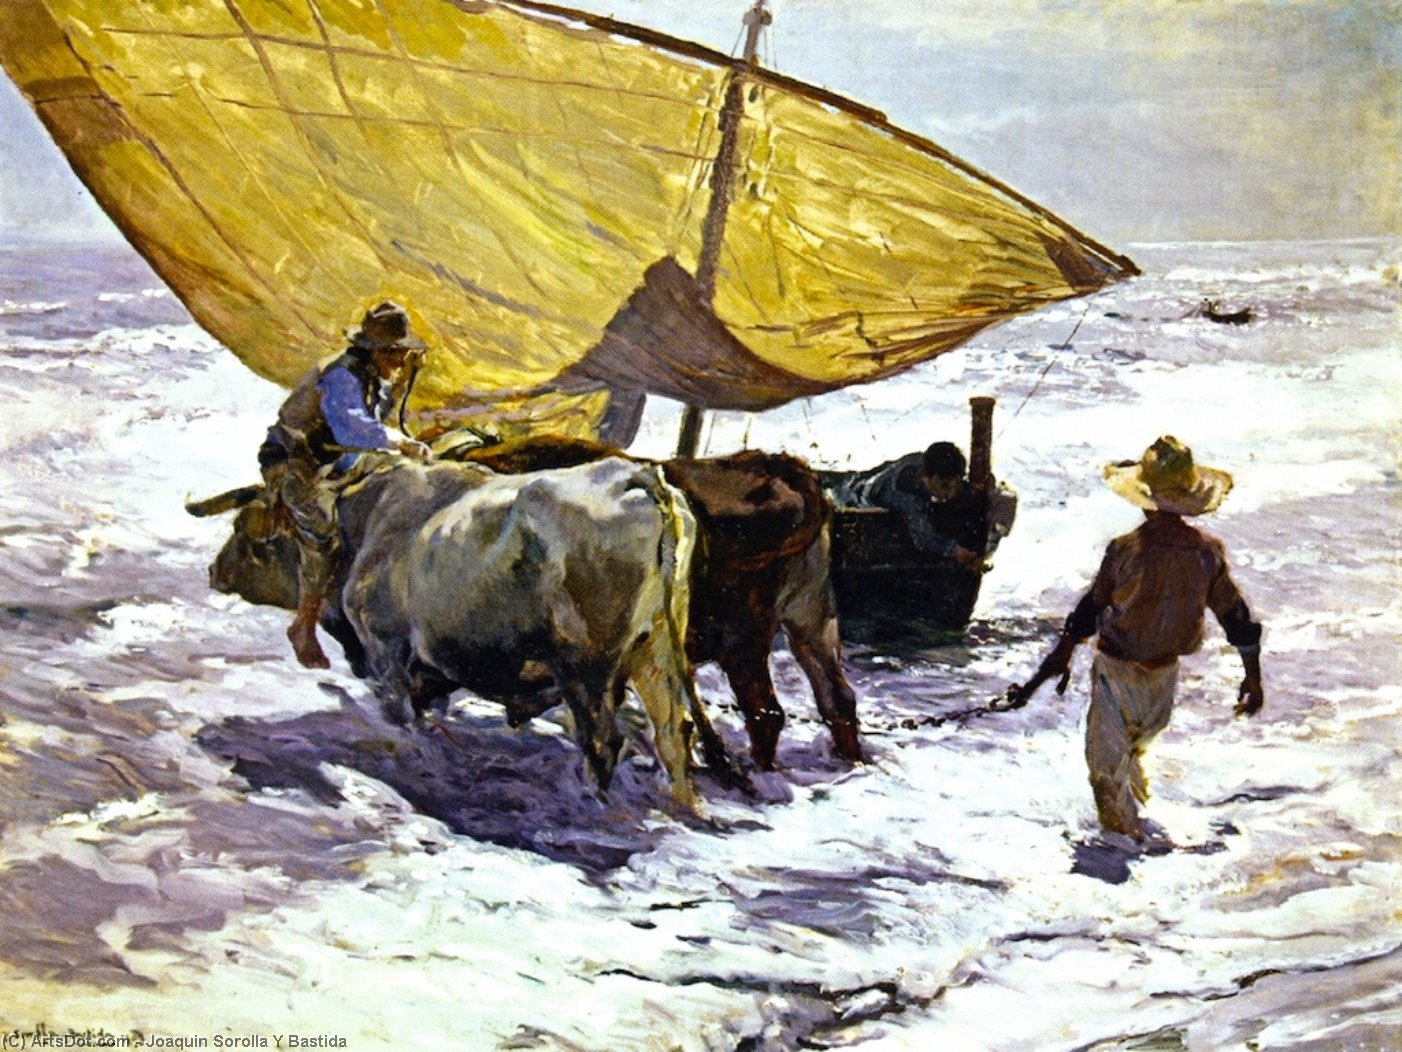 Landing the Boat, Valencia, Oil On Canvas by Joaquin Sorolla Y Bastida (1863-1923, Spain)